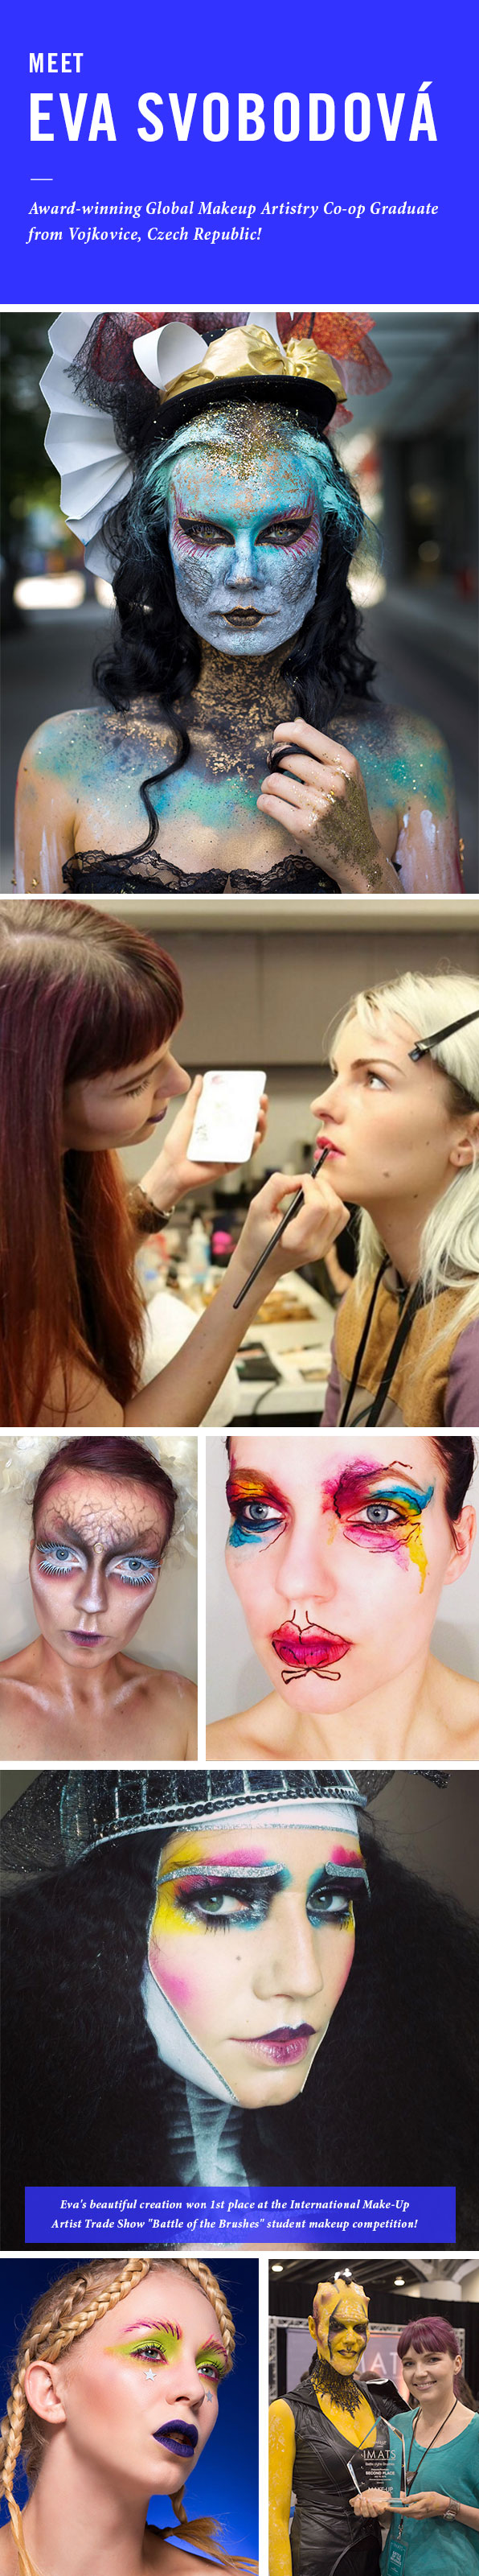 UN Profile: Meet Eva Svobodova, Blanche Macdonald Global Makeup Co-op graduate from Vojkovice, Czech Republic!